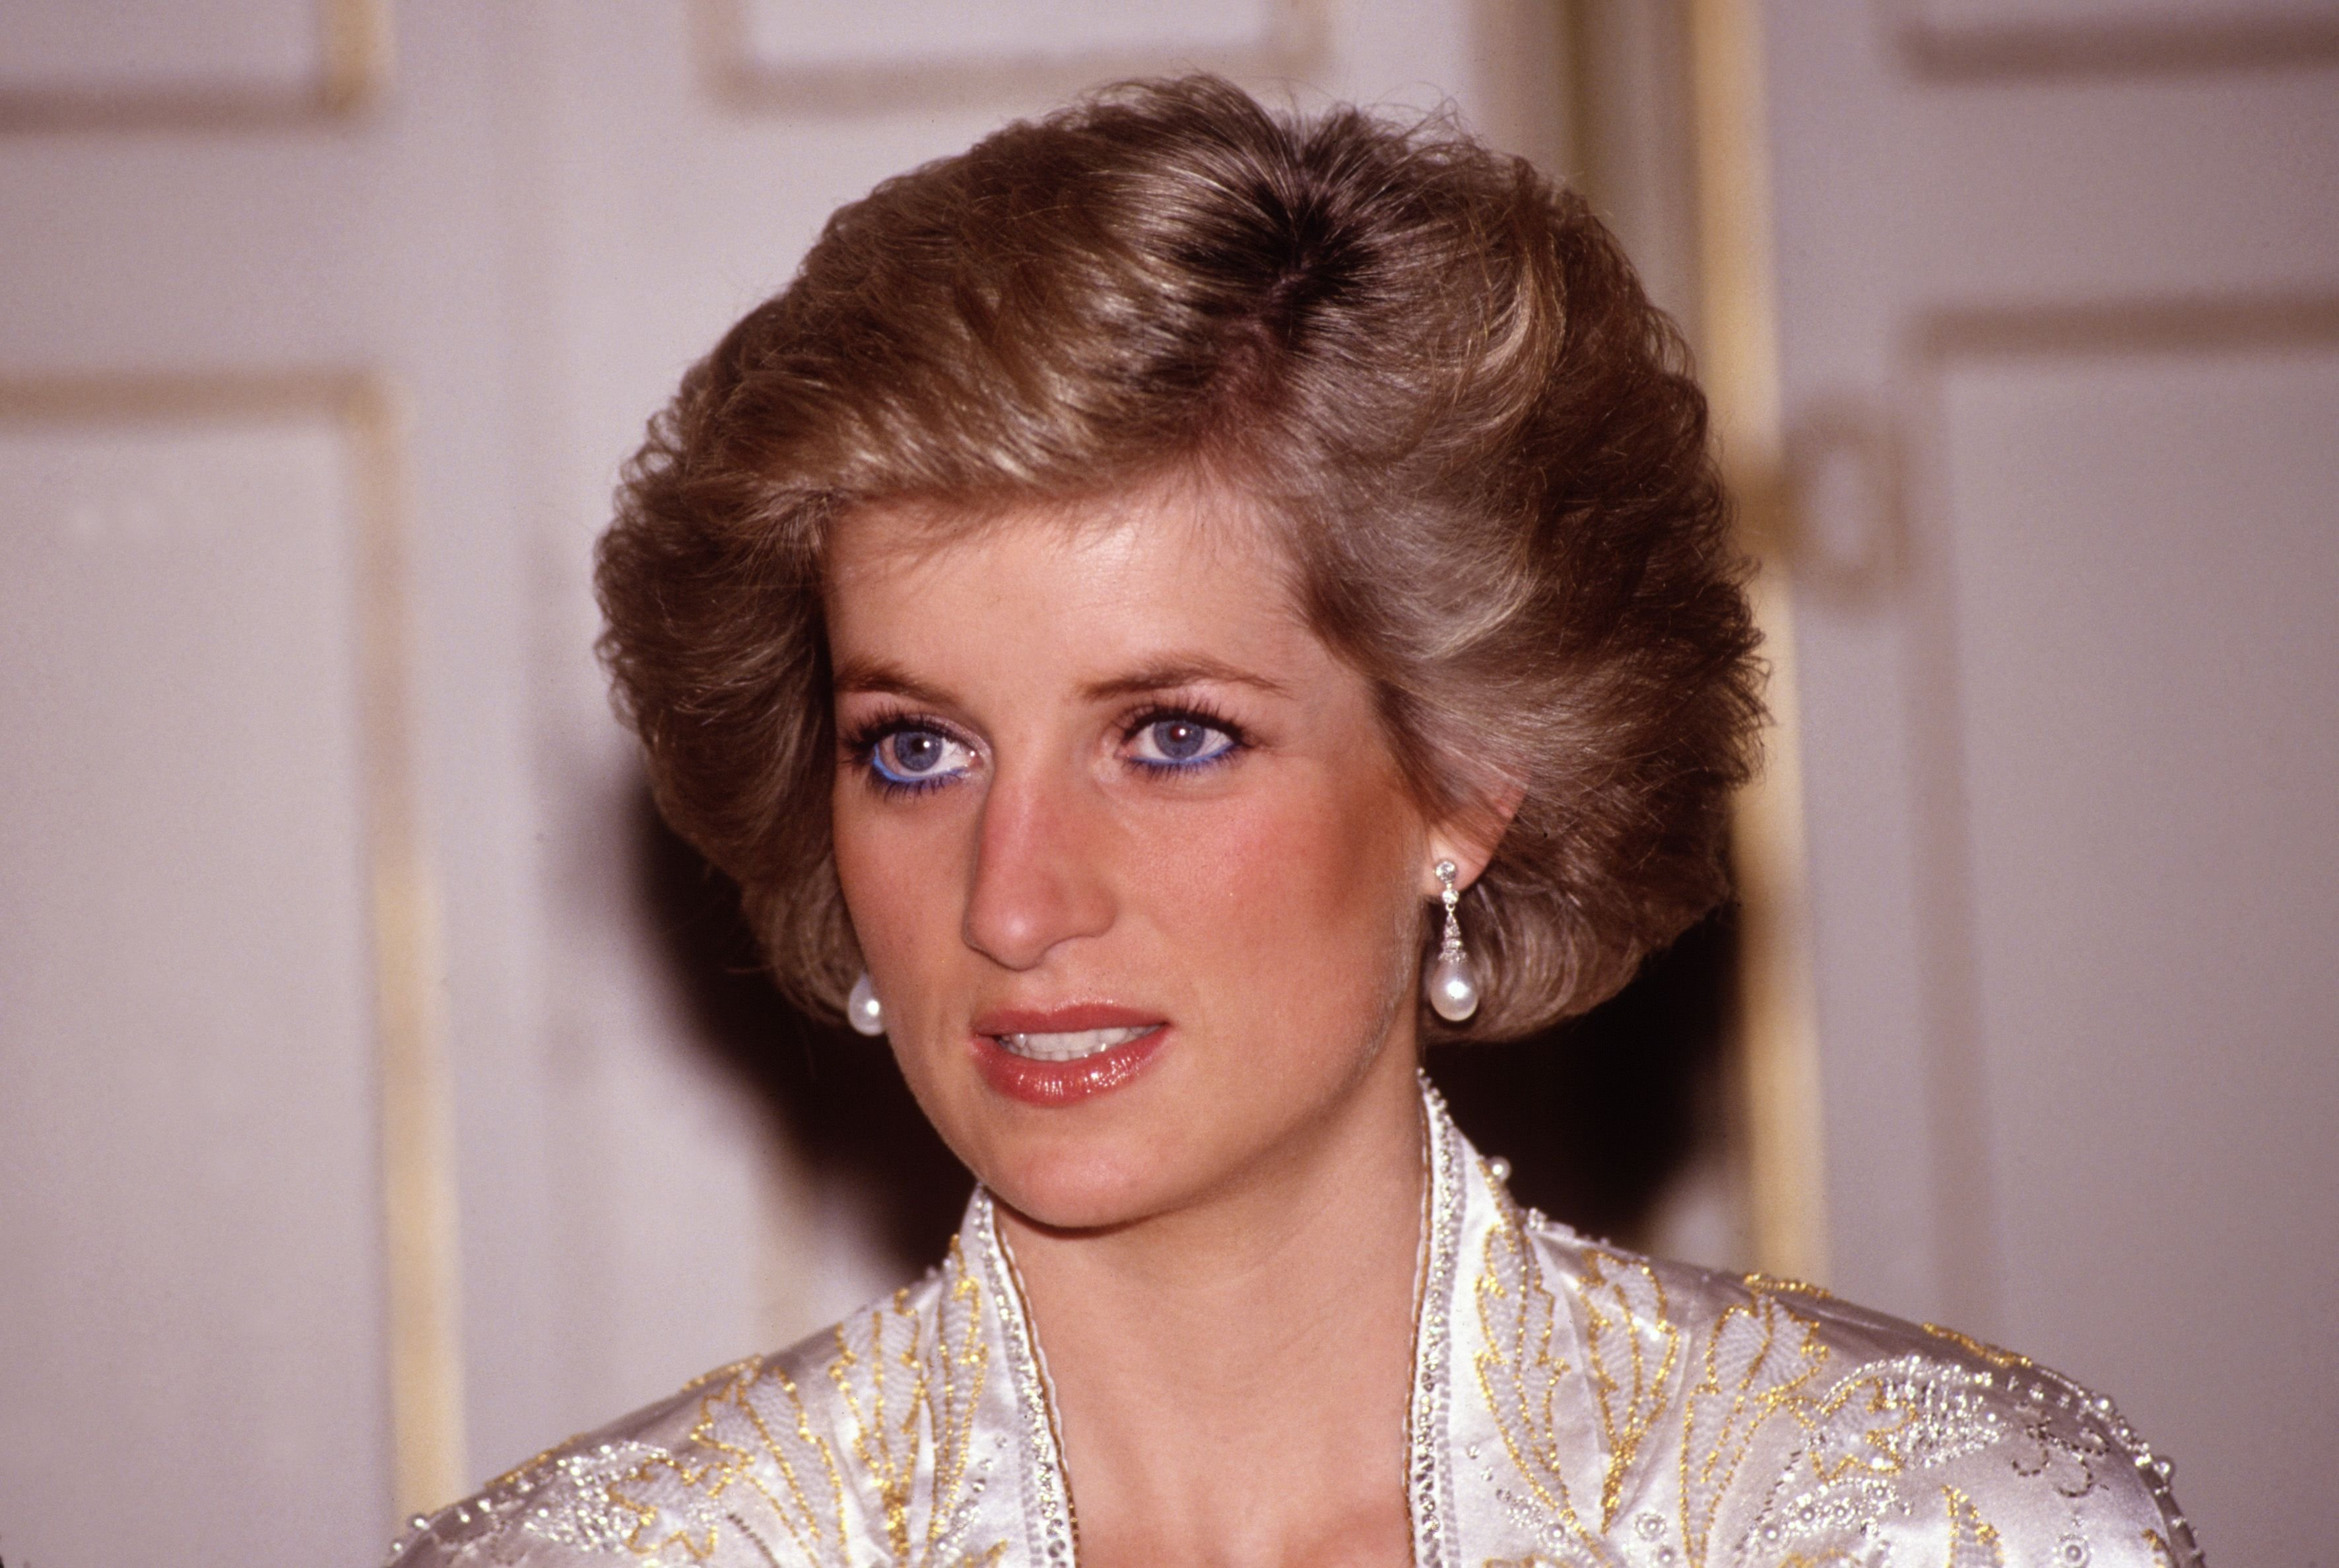 Princess Diana at a dinner given by President Mitterand on November 1, 1988, at the Elysee Palace / Getty Images